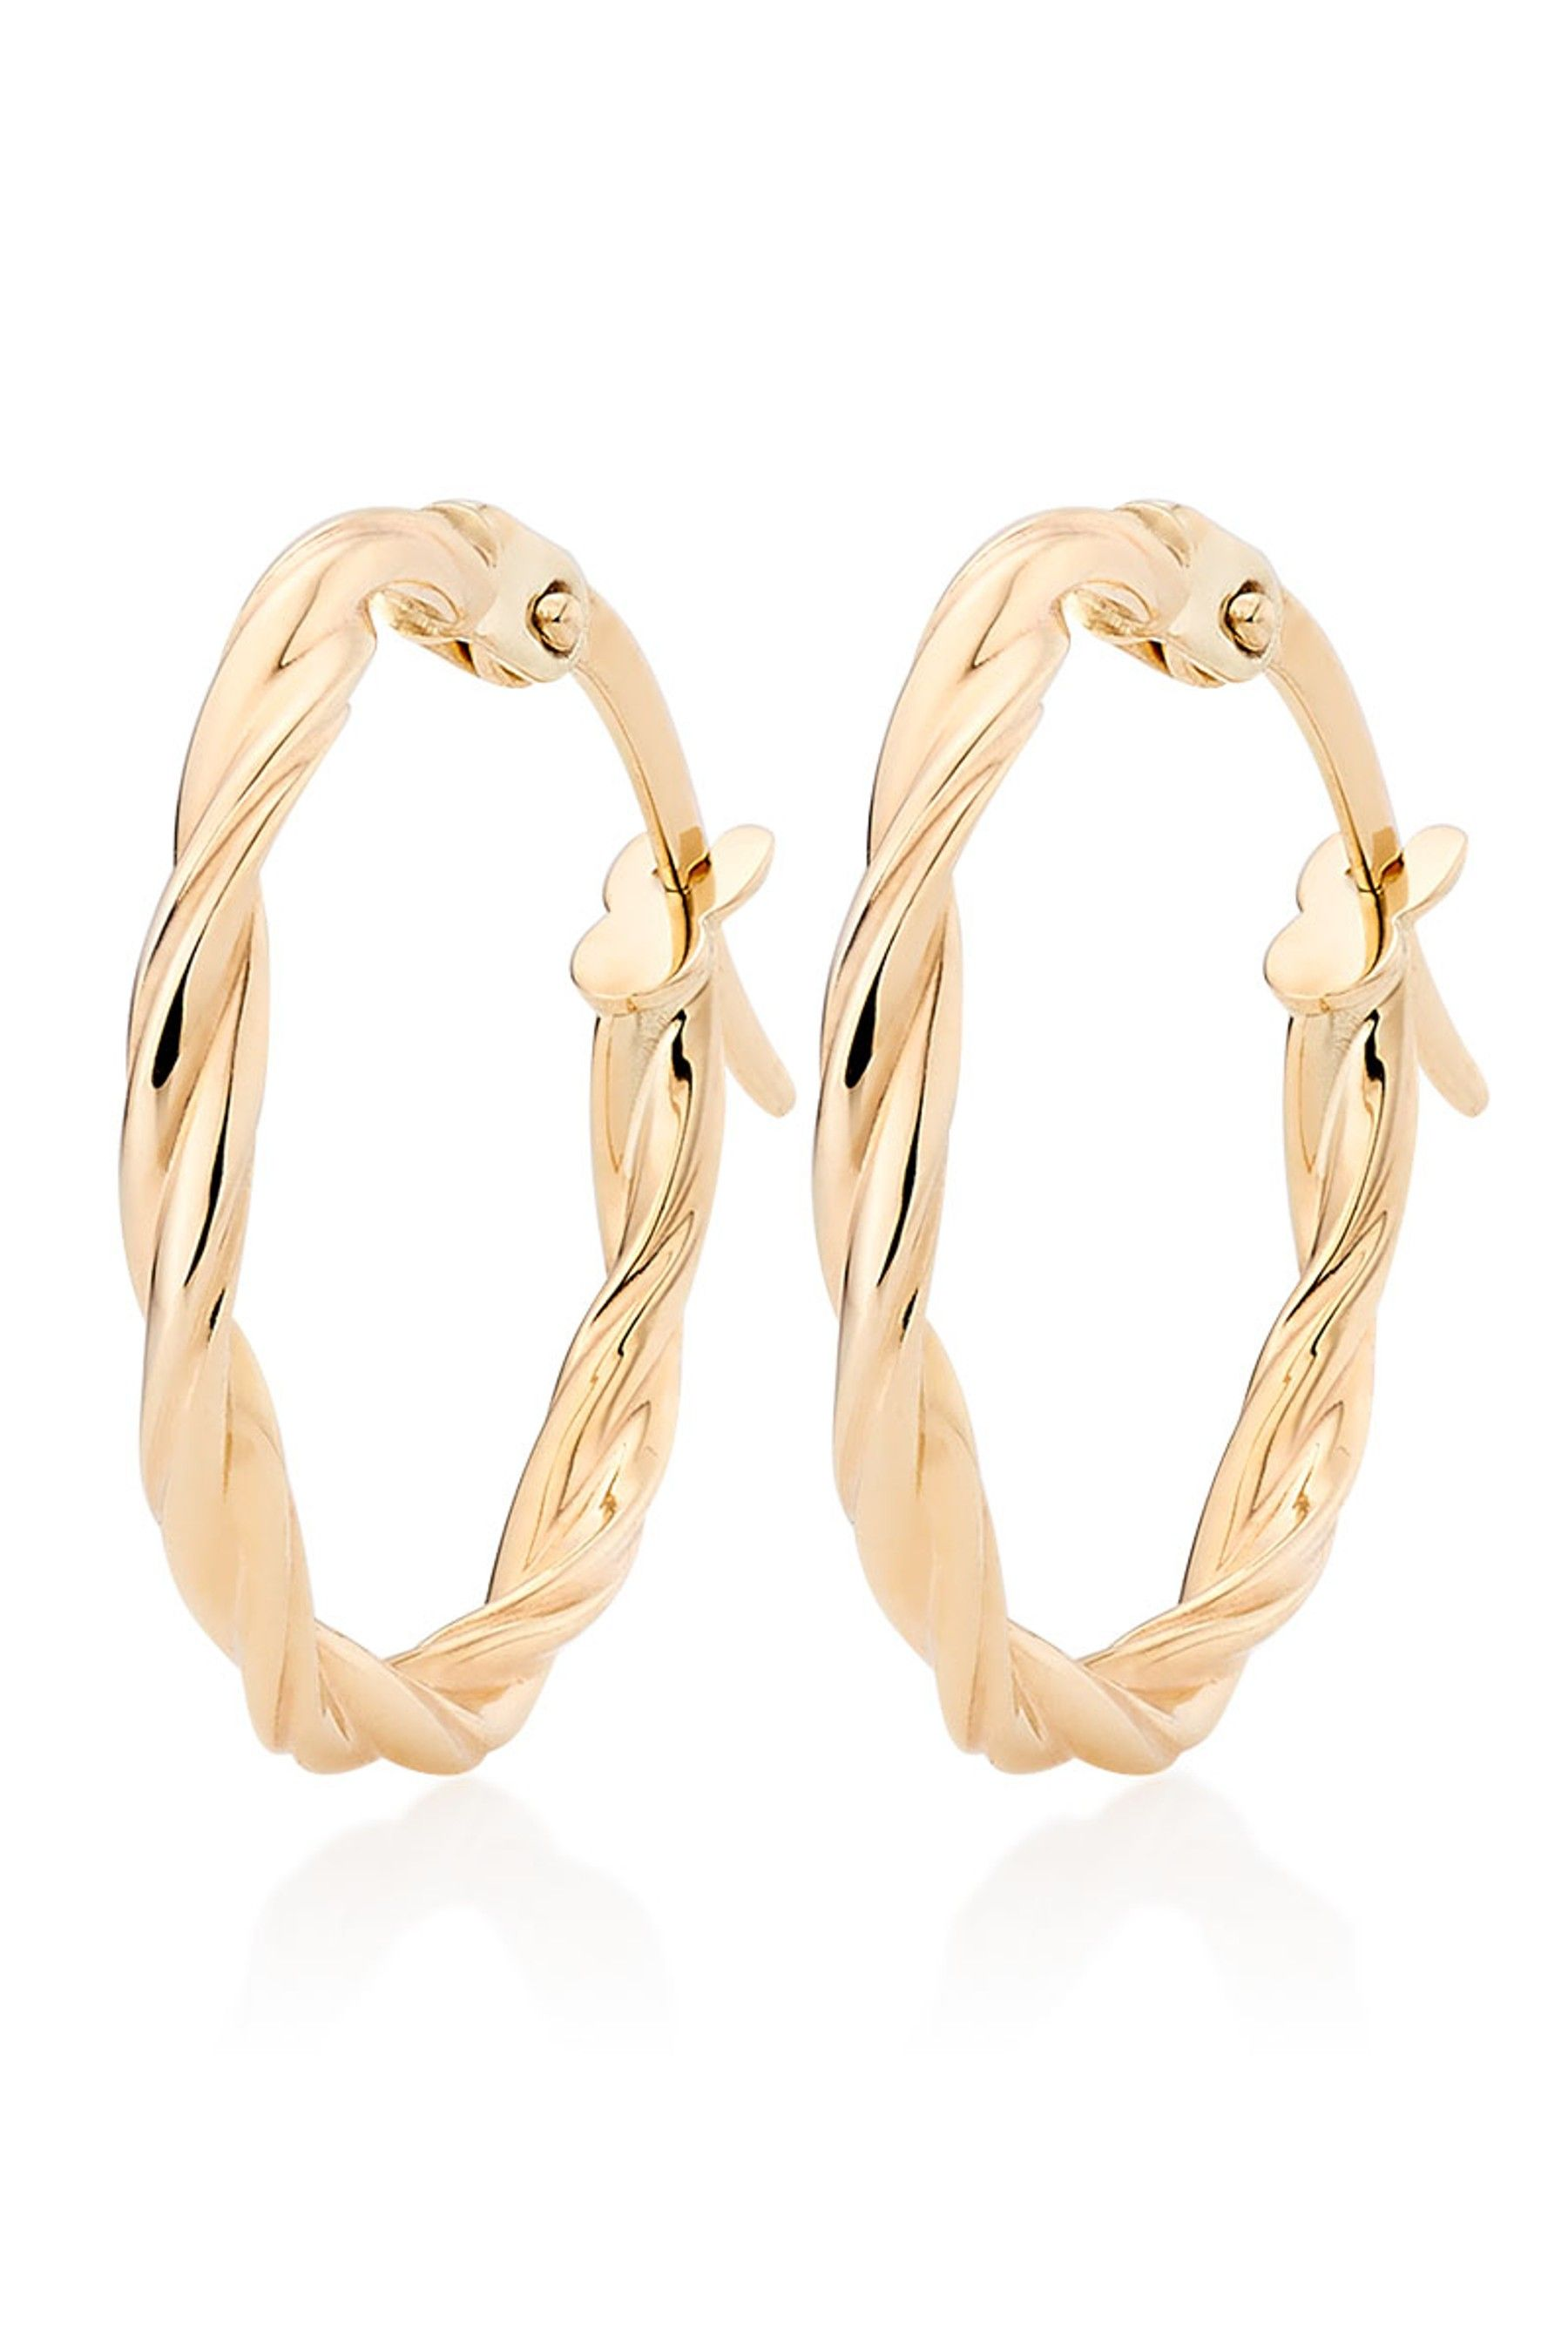 db13cb3ae Womens Beaverbrooks 9ct Gold Twist Hoop Earrings - Gold | Products ...